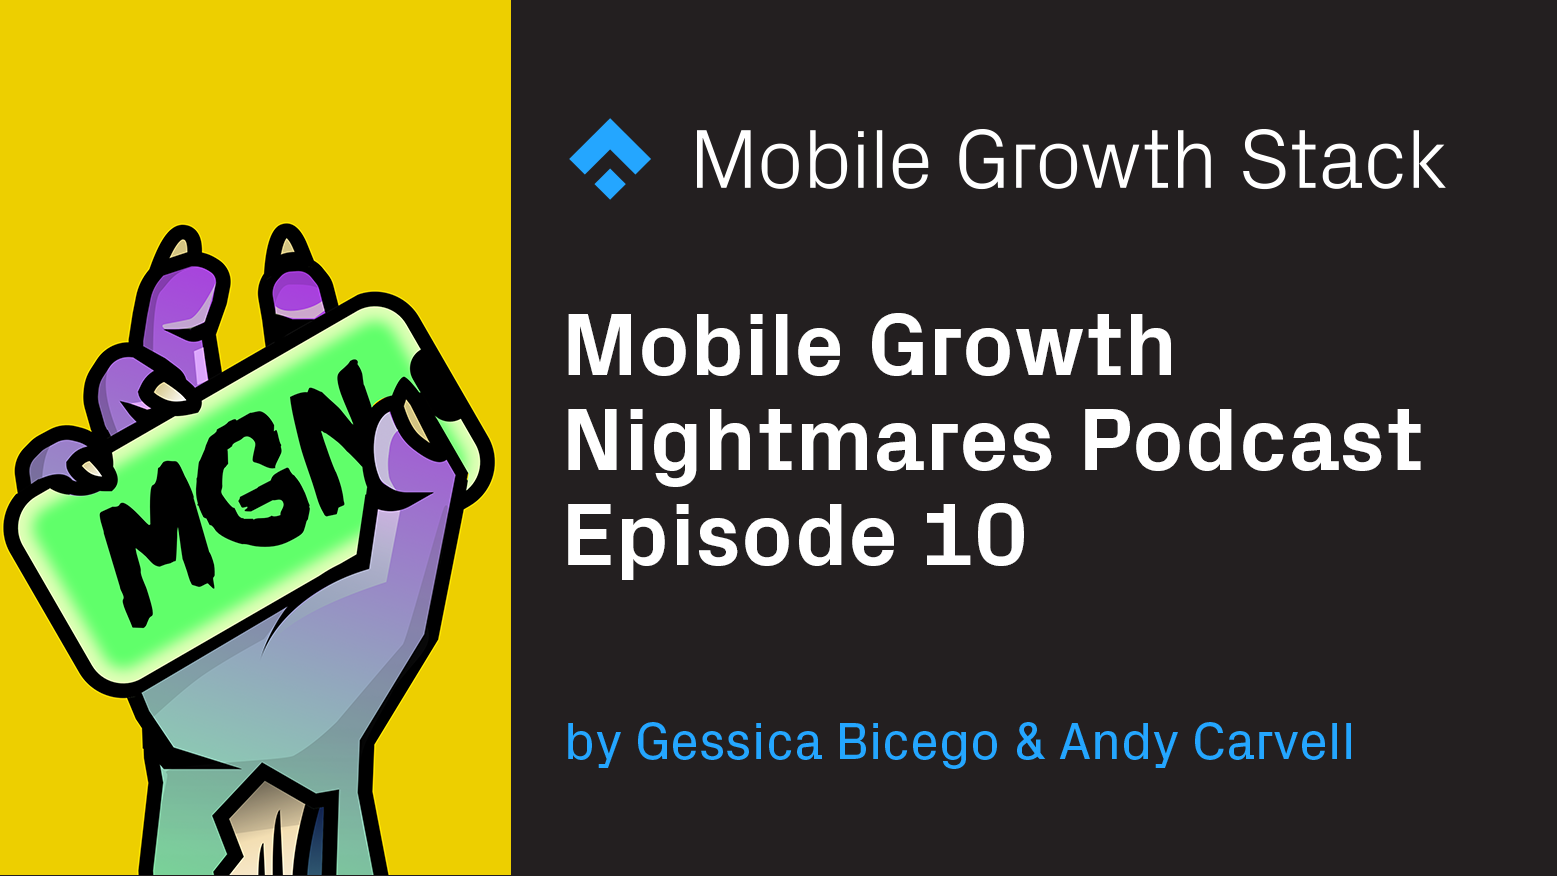 Mobile Growth Nightmares Episode 10 — Halloween special with Lucas Fedrizzi, Head of Sales & Expansion at Infleux.co